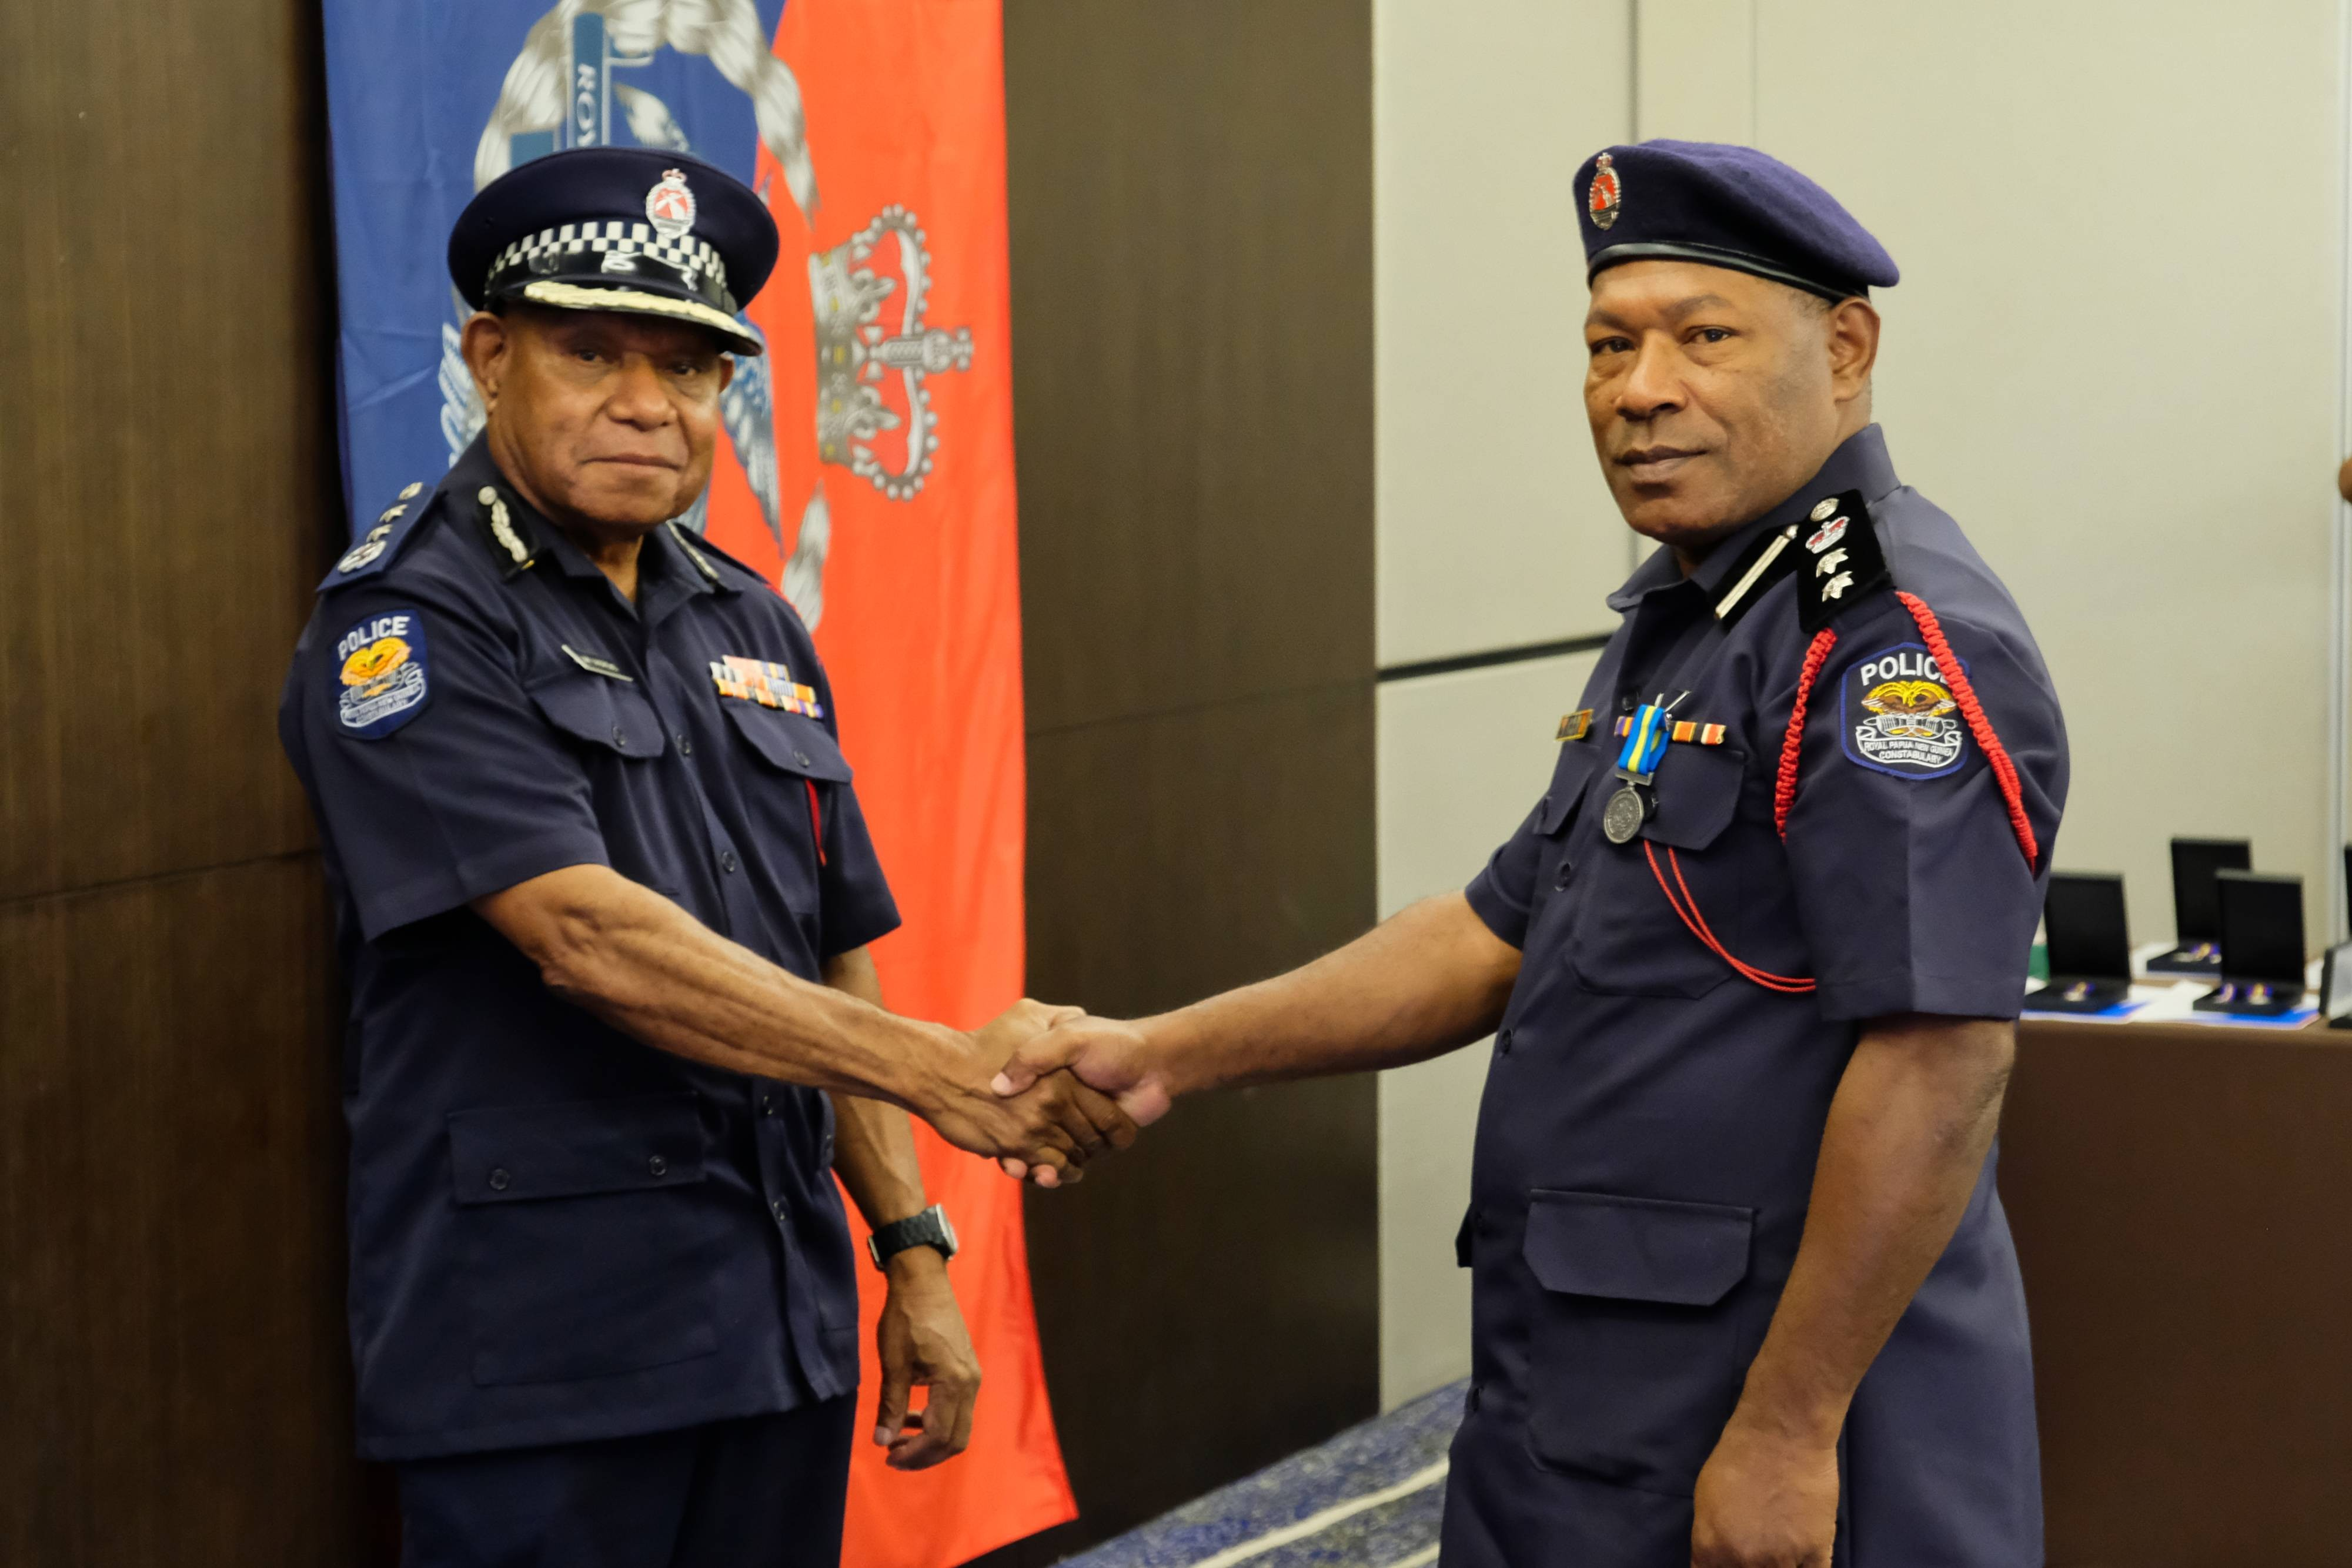 Deputy Commissioner and Chief of Police Operations presenting the Royal Solomon Islands Police's International Law Enforcement Cooperation Medal to Chief Superintendent John Kolopen, Director of the RPNGC Community Policing Directorate